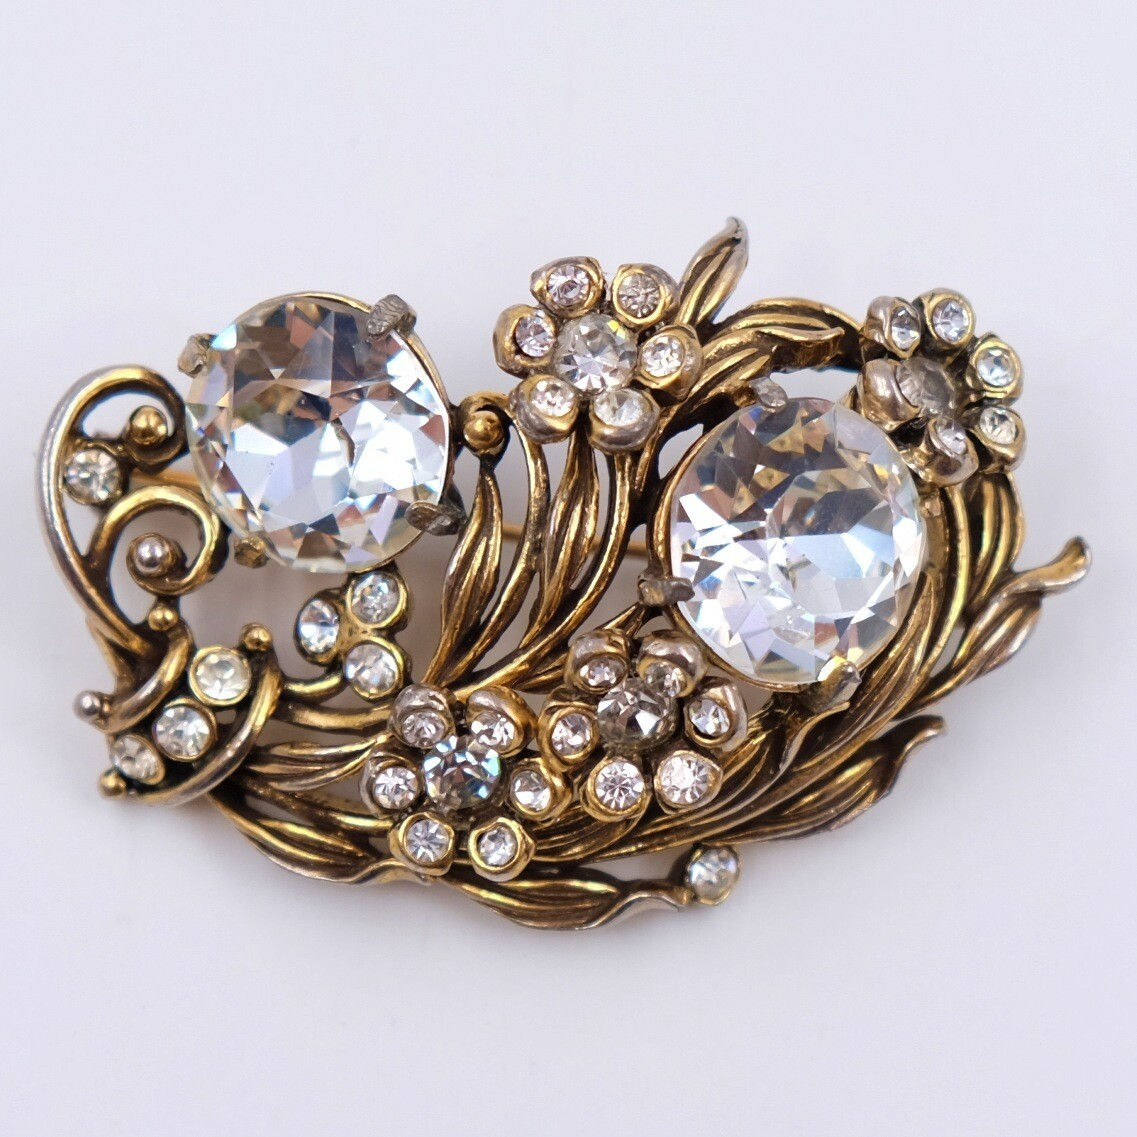 Vintage Hollycraft Feathers and Rhinestones Brooch 1950s